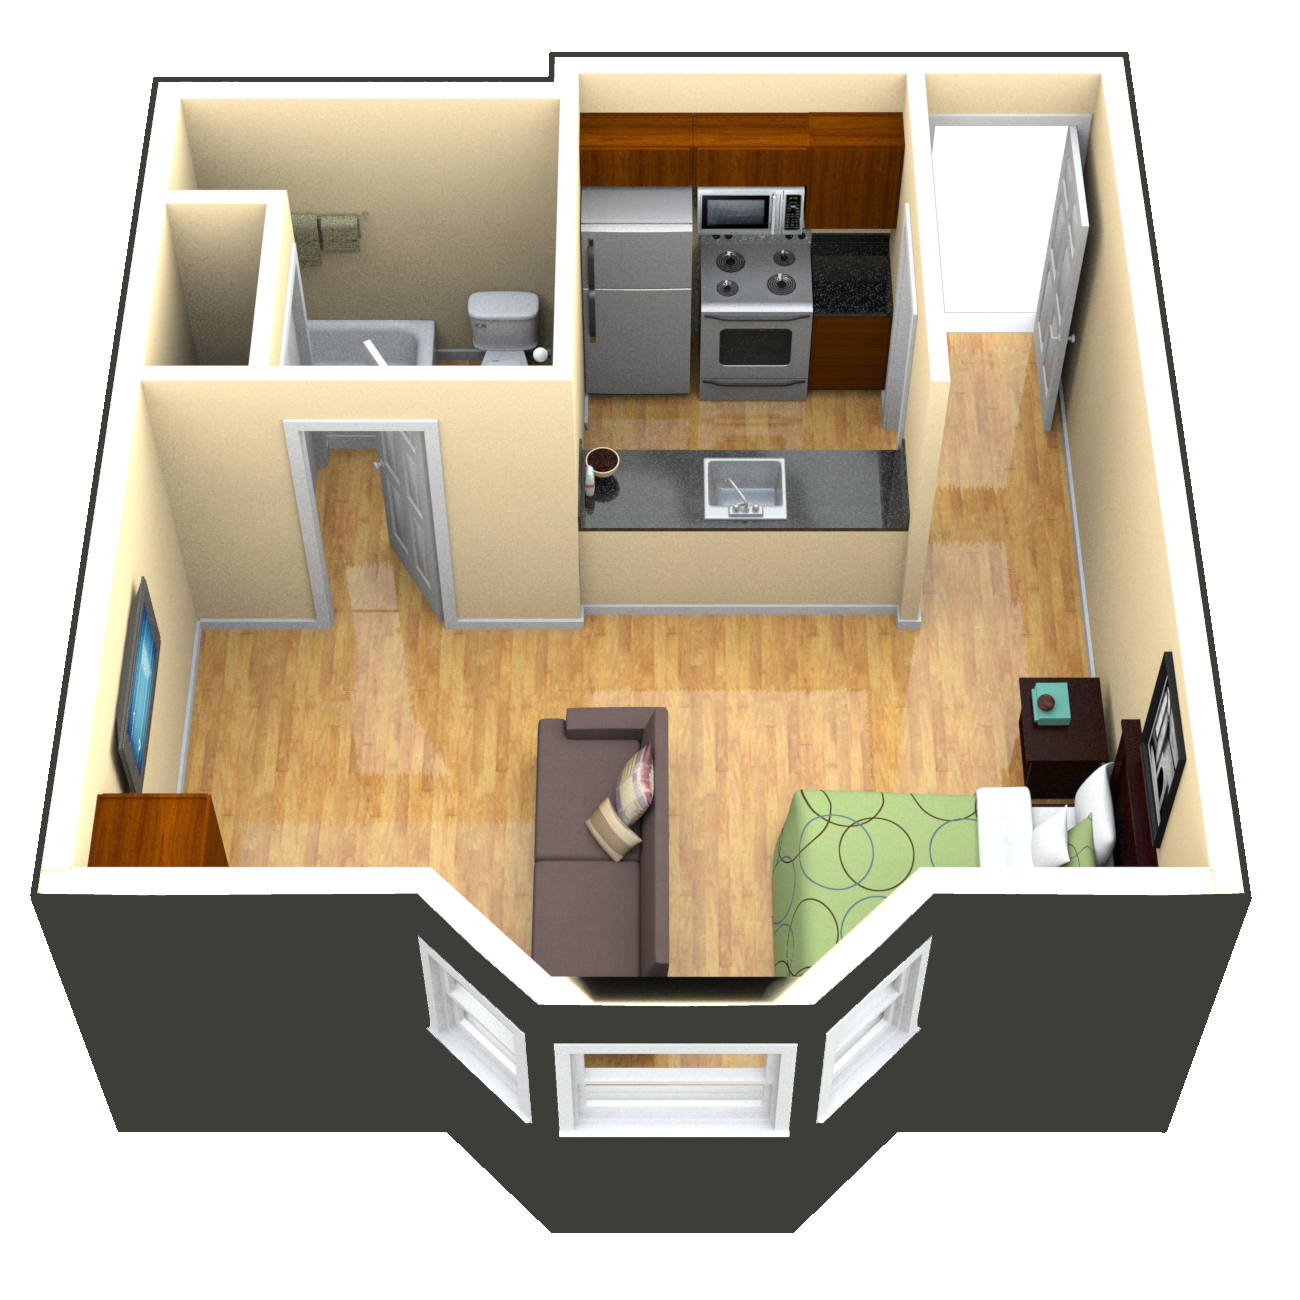 420 studio apartment floorplan google search studio Garage apartment design ideas